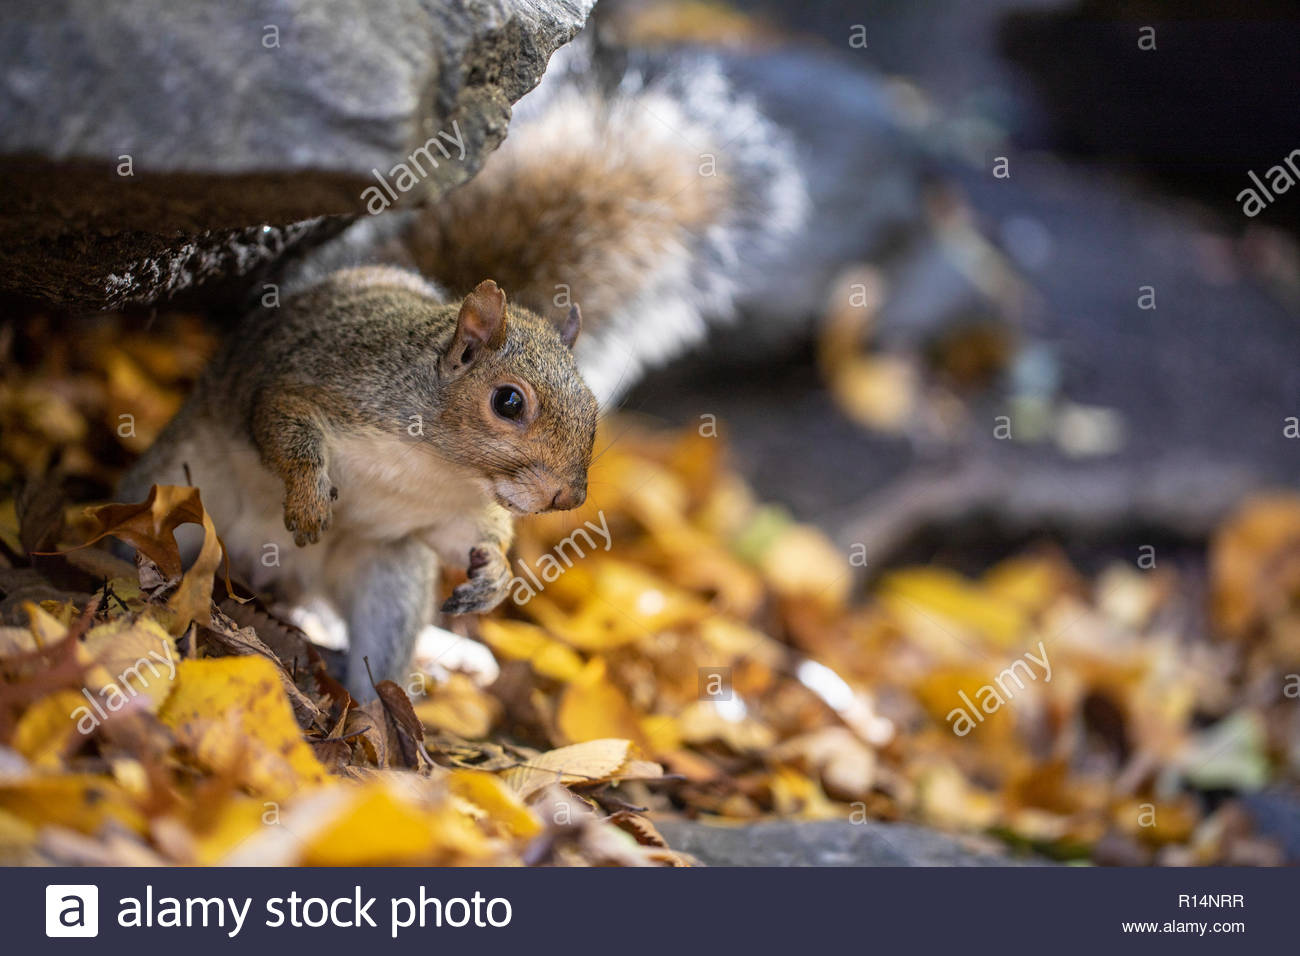 Eastern Grey Squirrel in Central Park 2018 - Stock Image